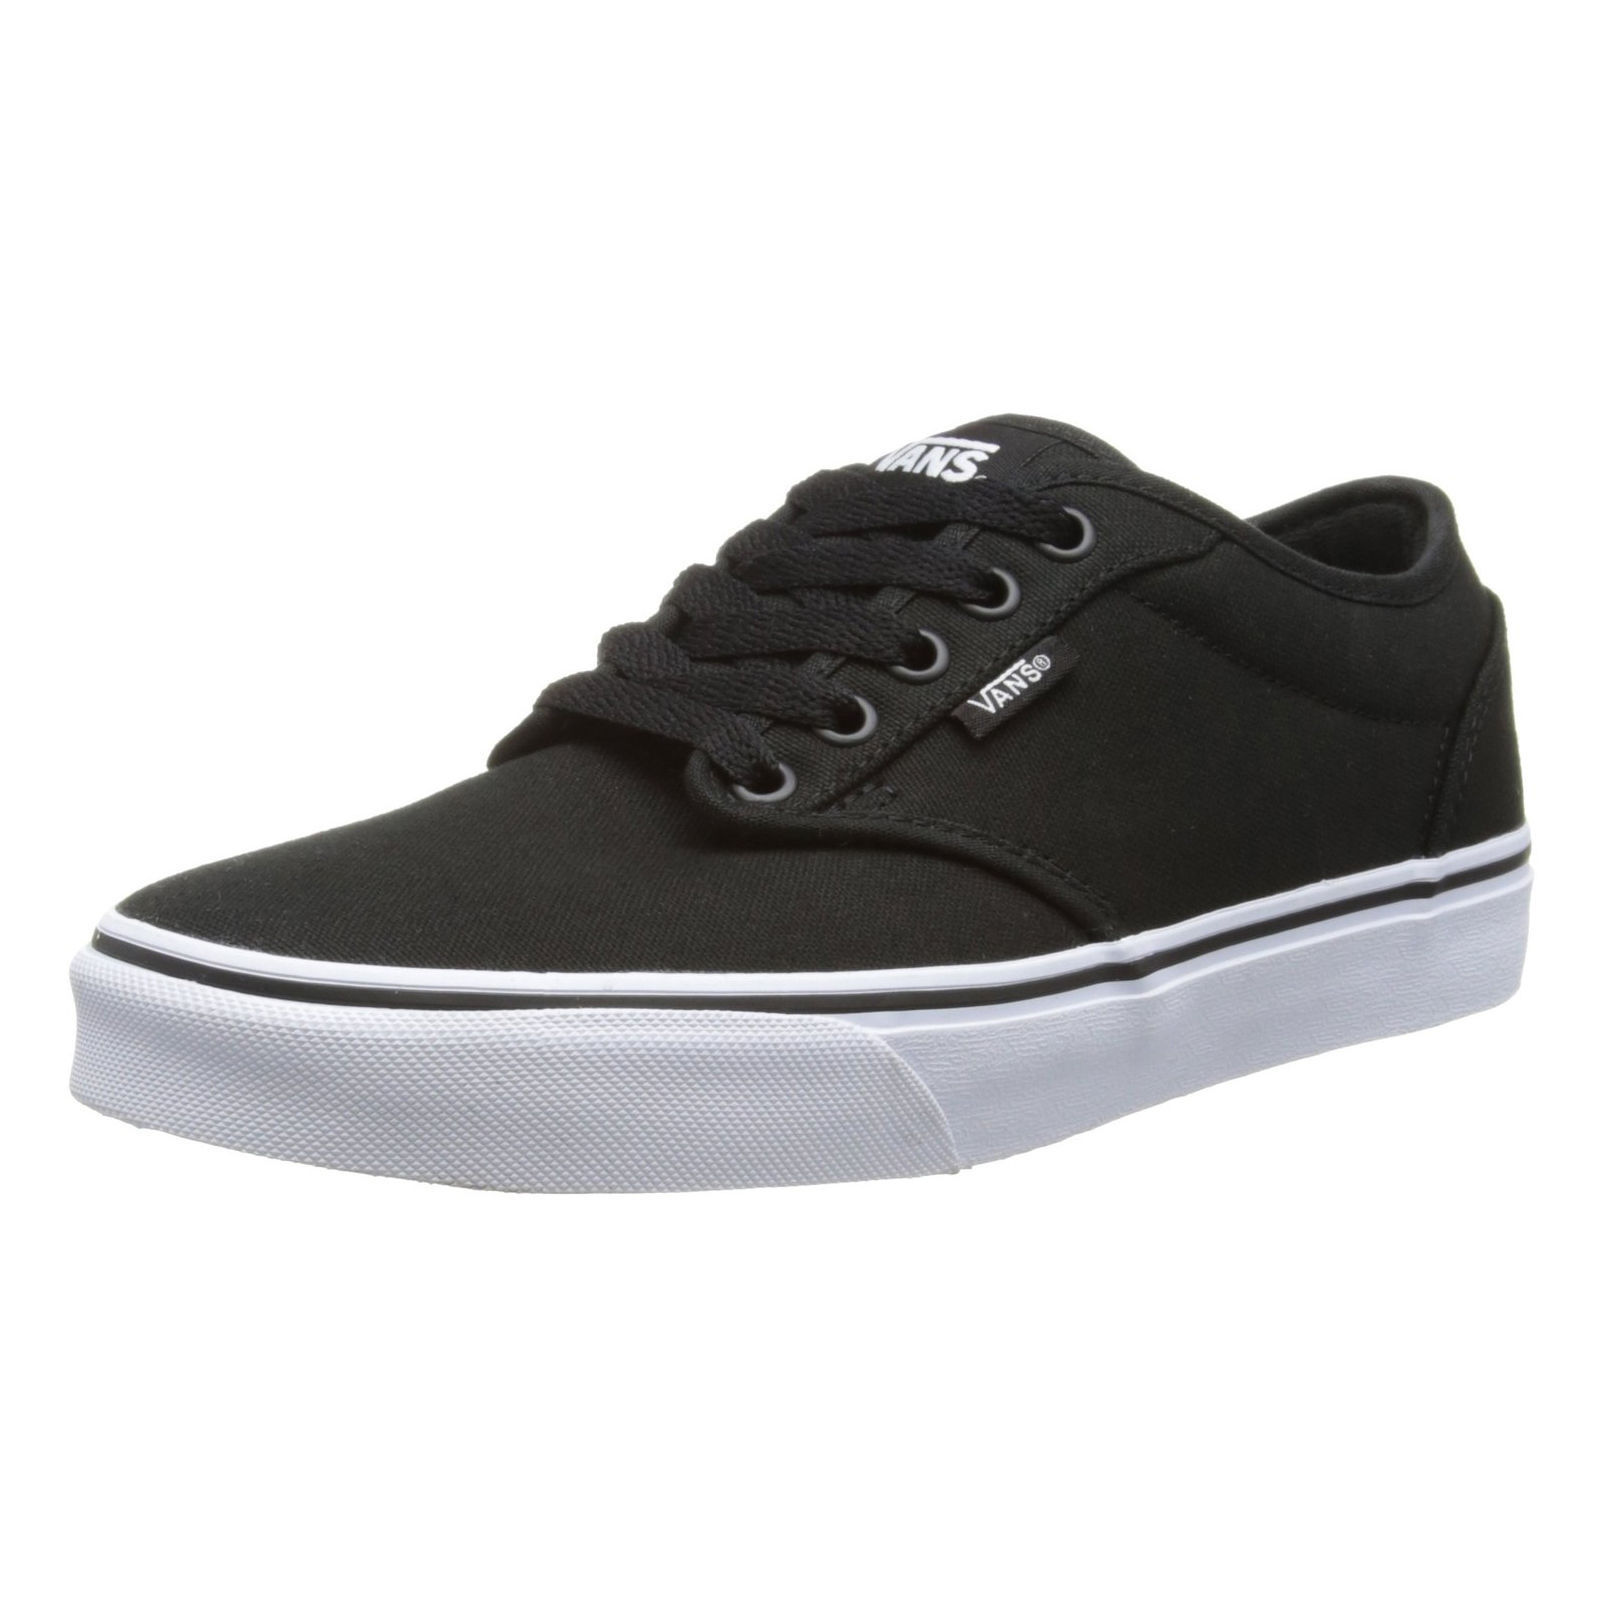 f72b645ffd Details about VANS Atwood Mens Canvas Skater Trainers Plain Shoes Lace Up  Plimsoll Black White